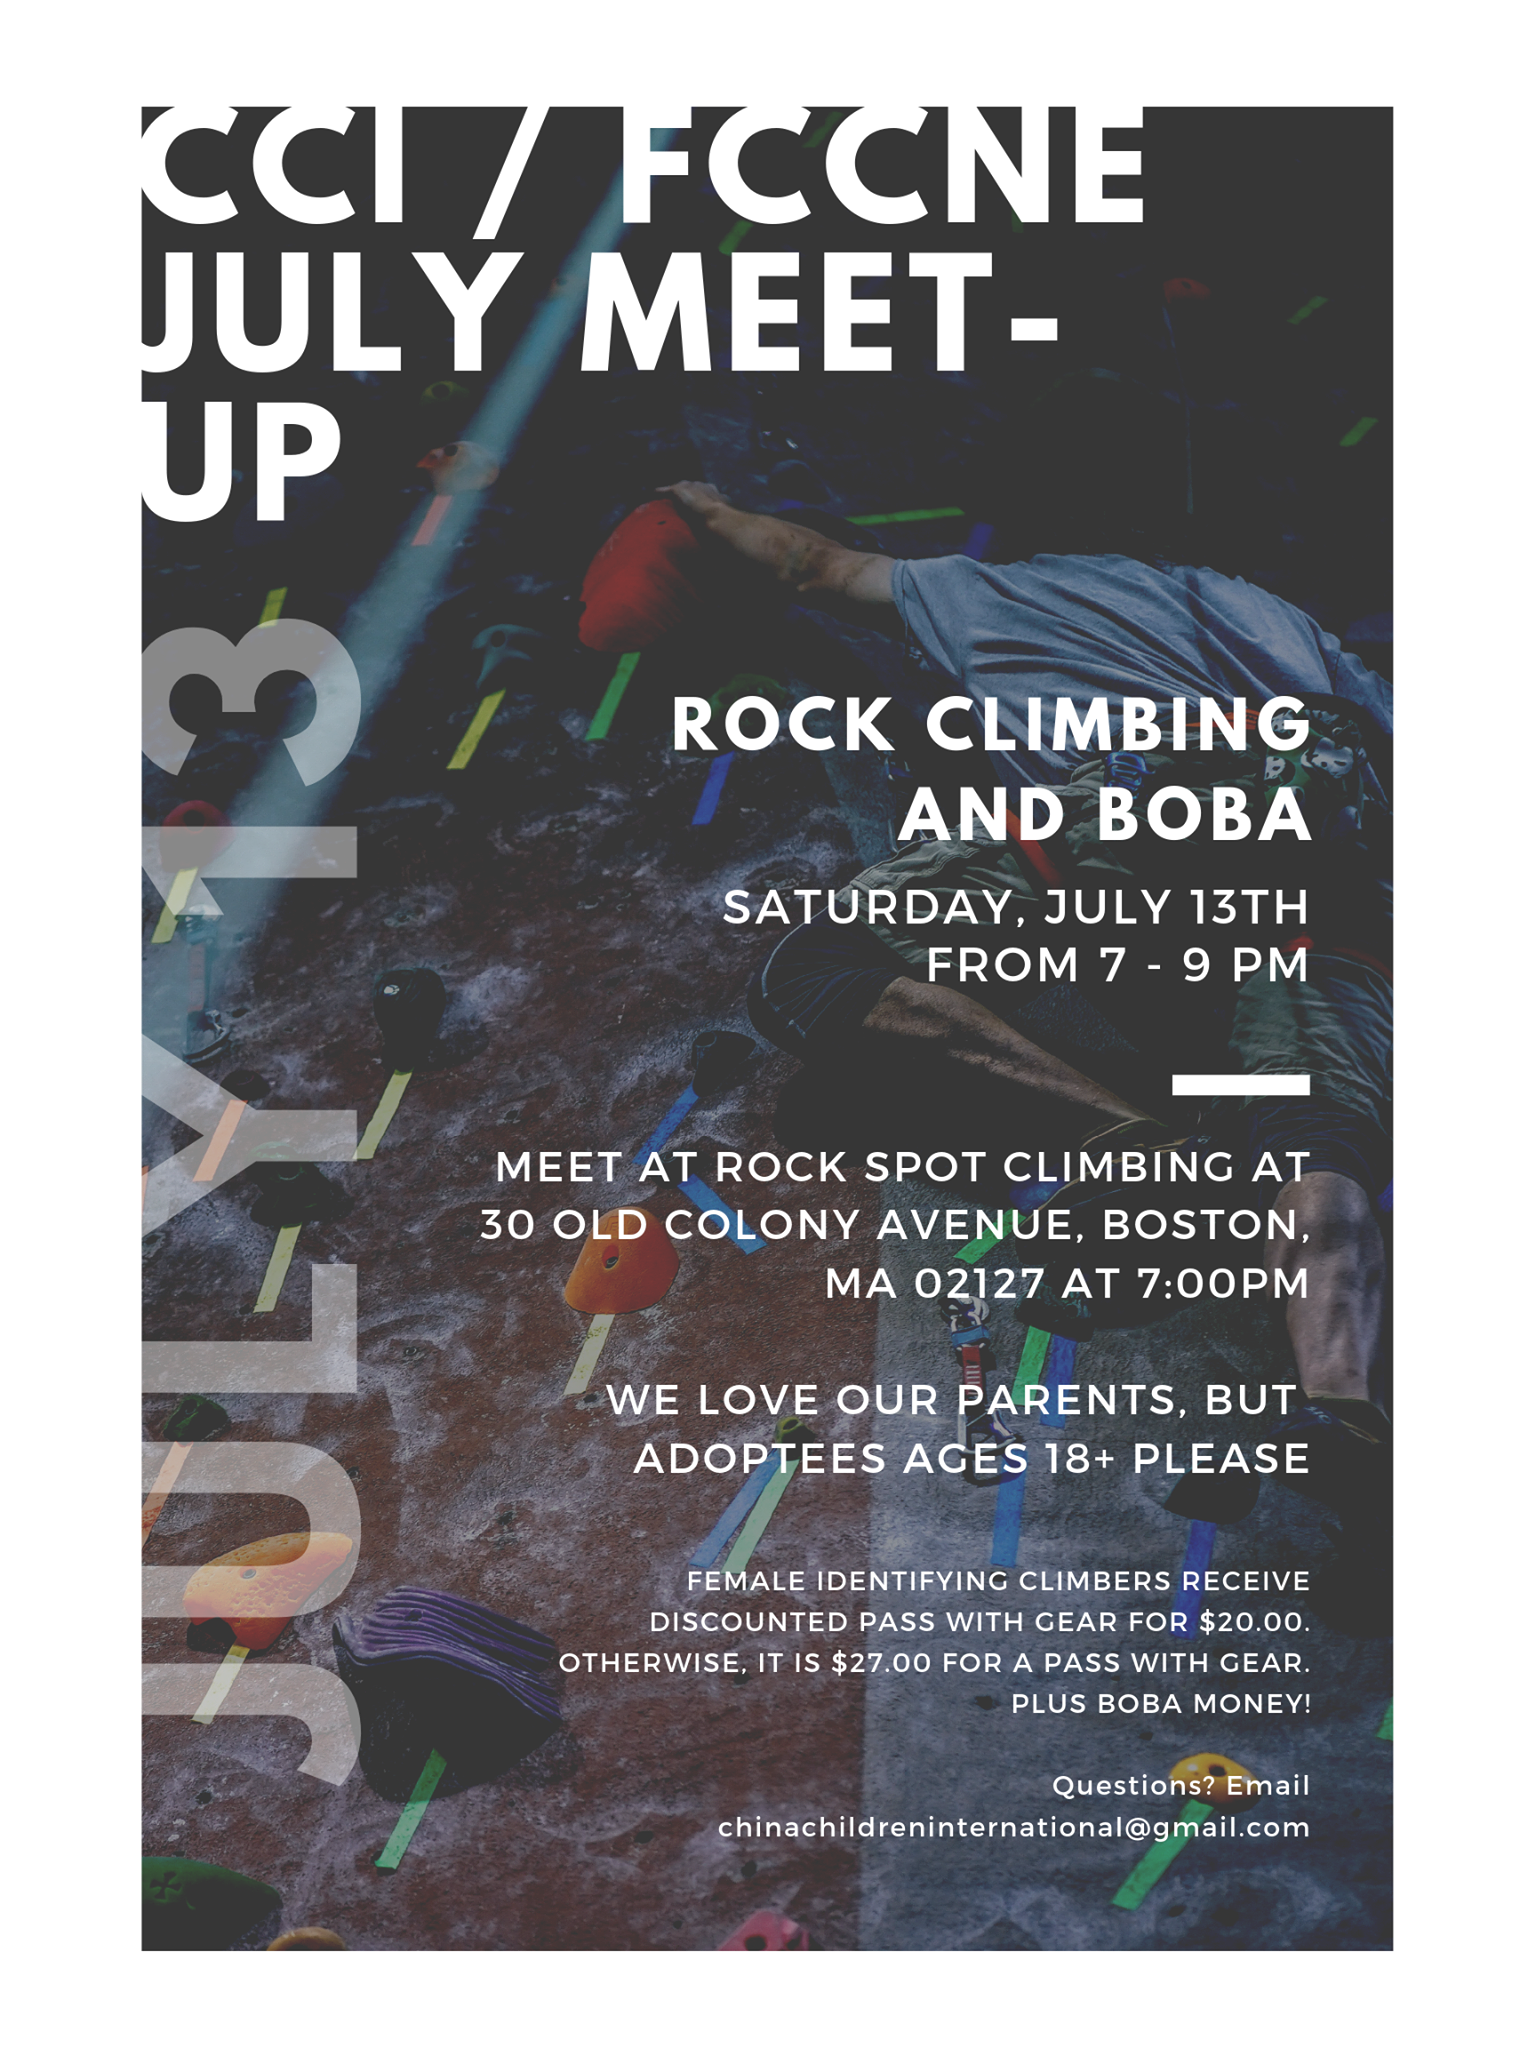 July 2019 Meet-up is here! - Hi everyone, the July meetup is here! We will be going rock climbing together at Rock Spot Climbing in South Boston, and will get boba together afterwards in Chinatown!**A note about climbing gear**Who: Chinese adoptees over the age of 18. We love our parents, but Chinese adoptees only, please. What: Rock climbing and boba afterwardsWhen: Saturday, July 13 from 7pm-9pmWhere: Meet at Rock Spot Climbing South Boston, 30 Old Colony Ave, Boston, MA 02127How: Take an outbound Red Line Ashmont or Braintree train to Broadway, then walk about 5 minutes from the station to the climbing gym.